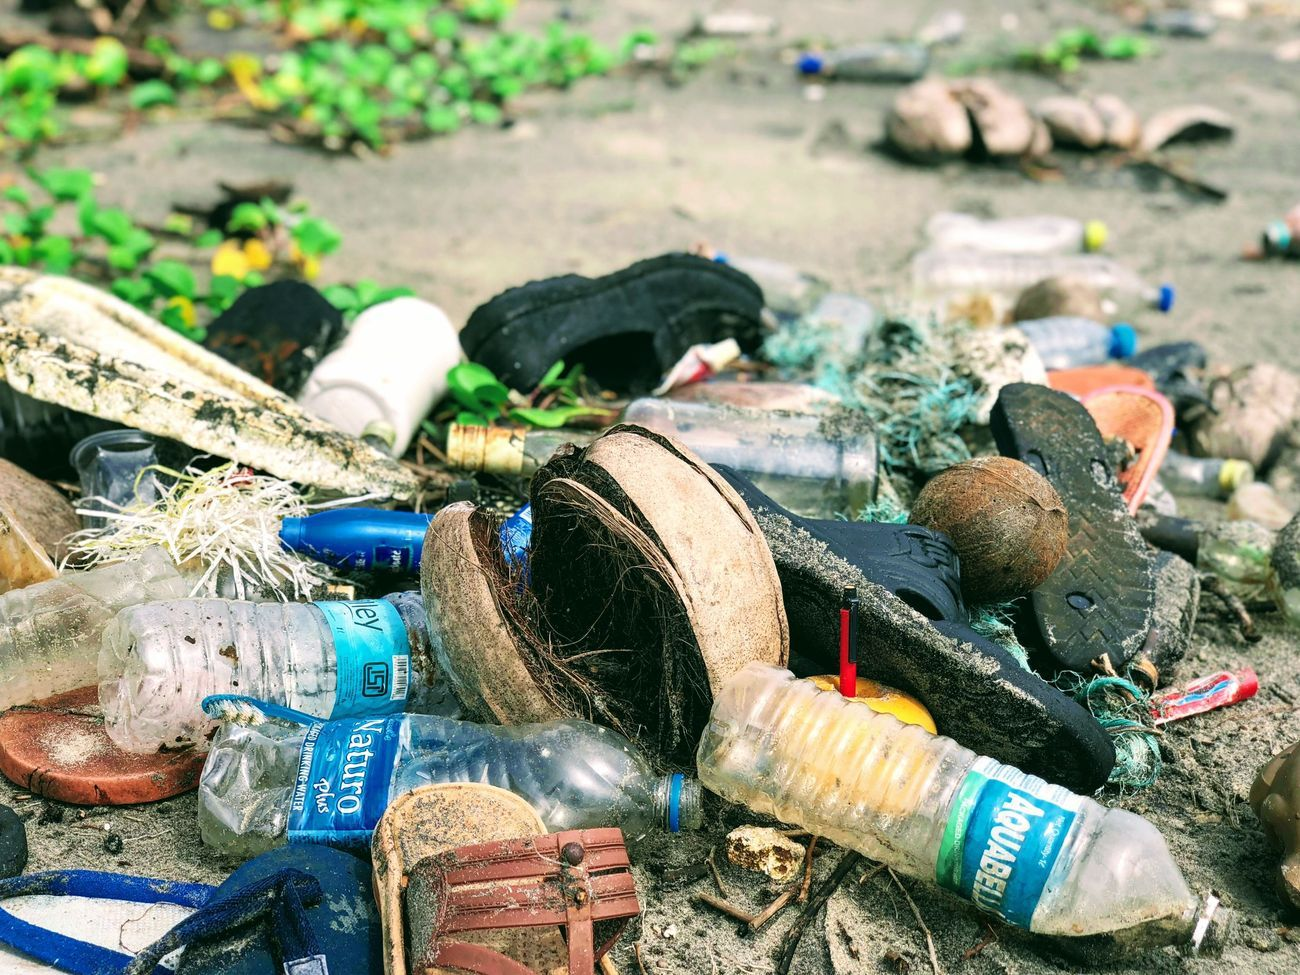 Upcycling Plastic Waste Innovation Challenge